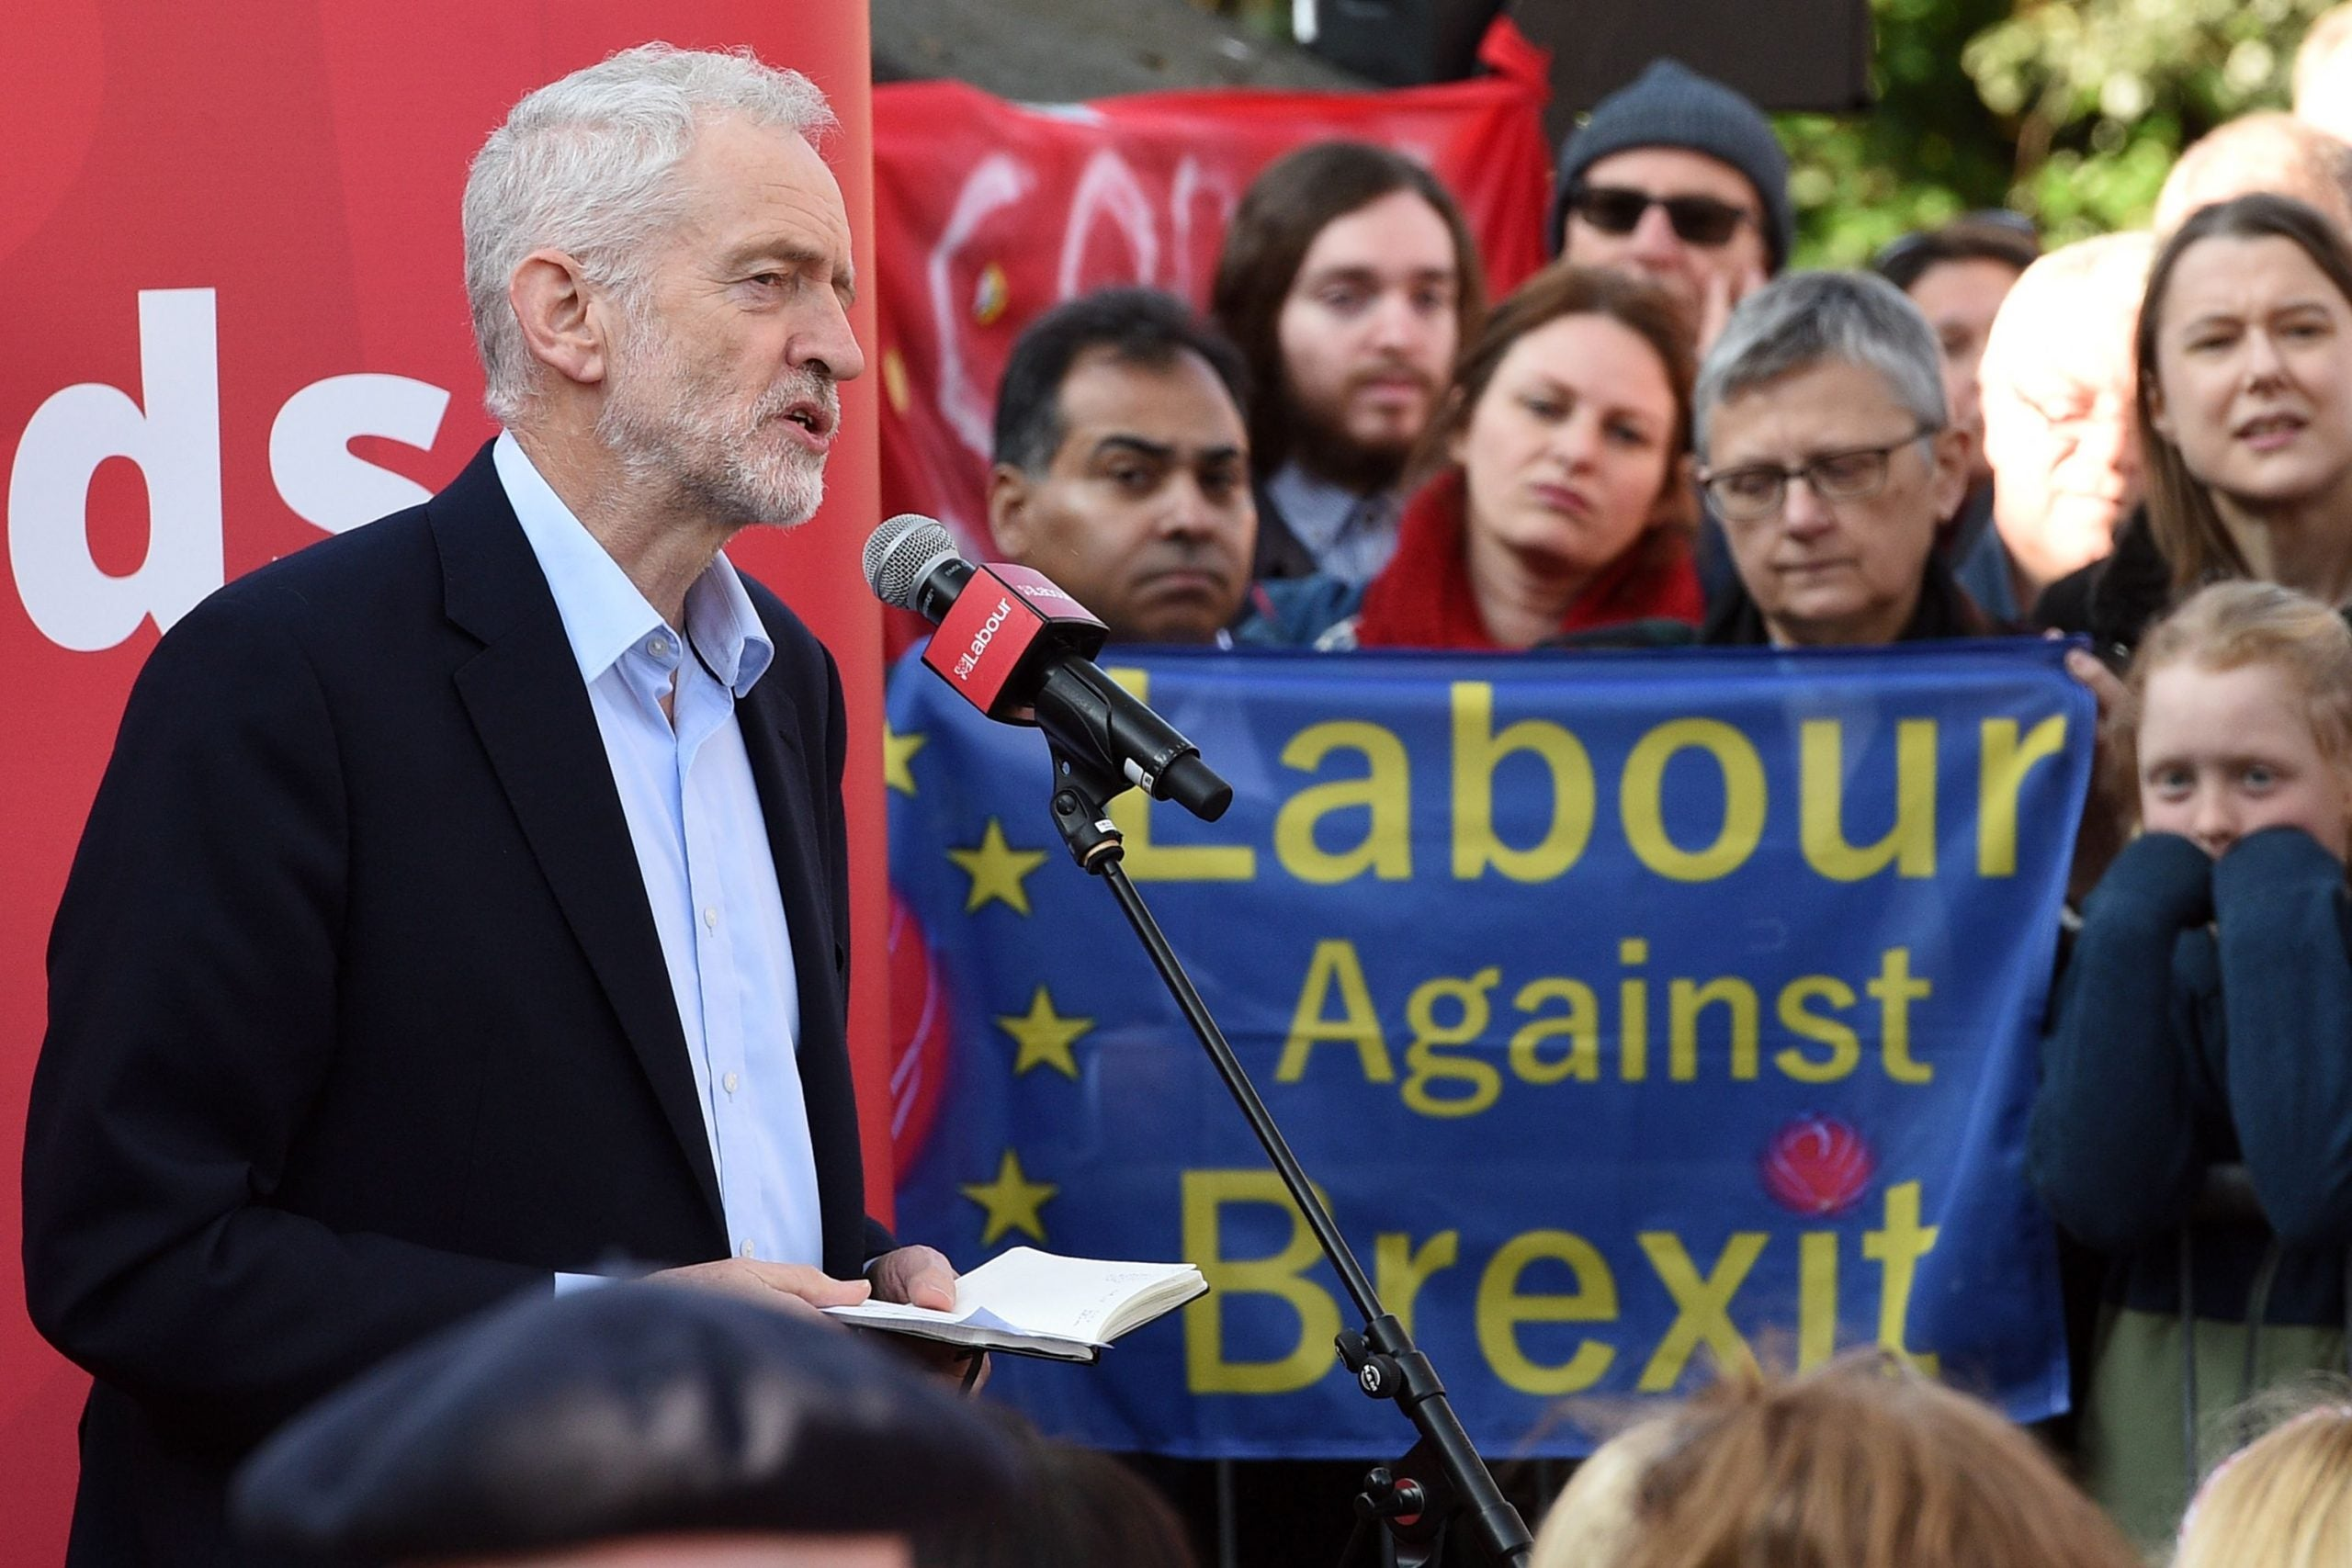 Labour must back a Brexit ratification referendum to end the UK's crisis